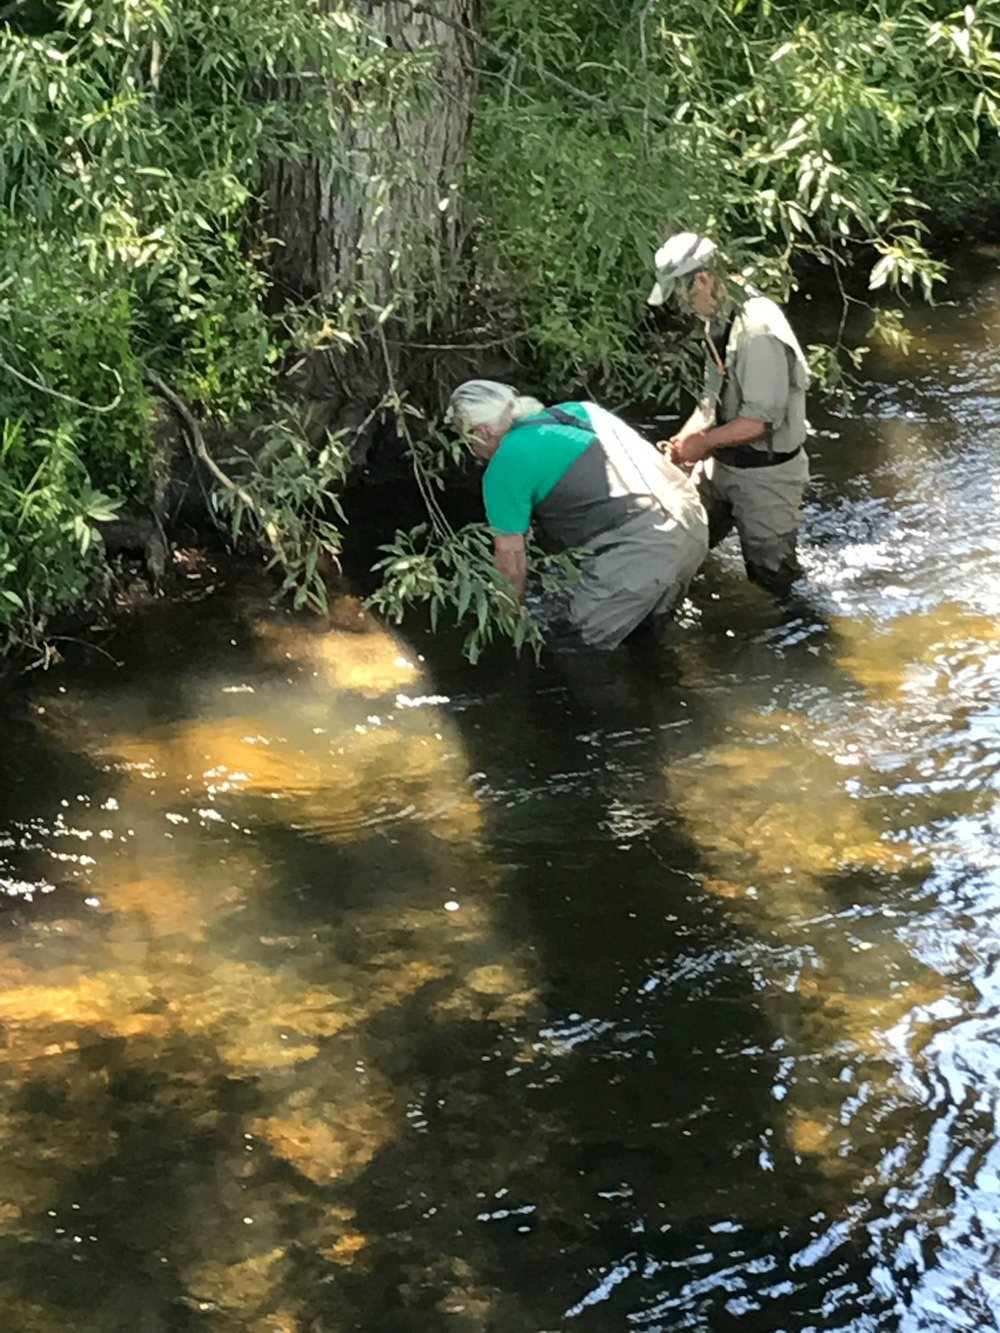 RRRC Members deploying temperature monitors in the Rifle River